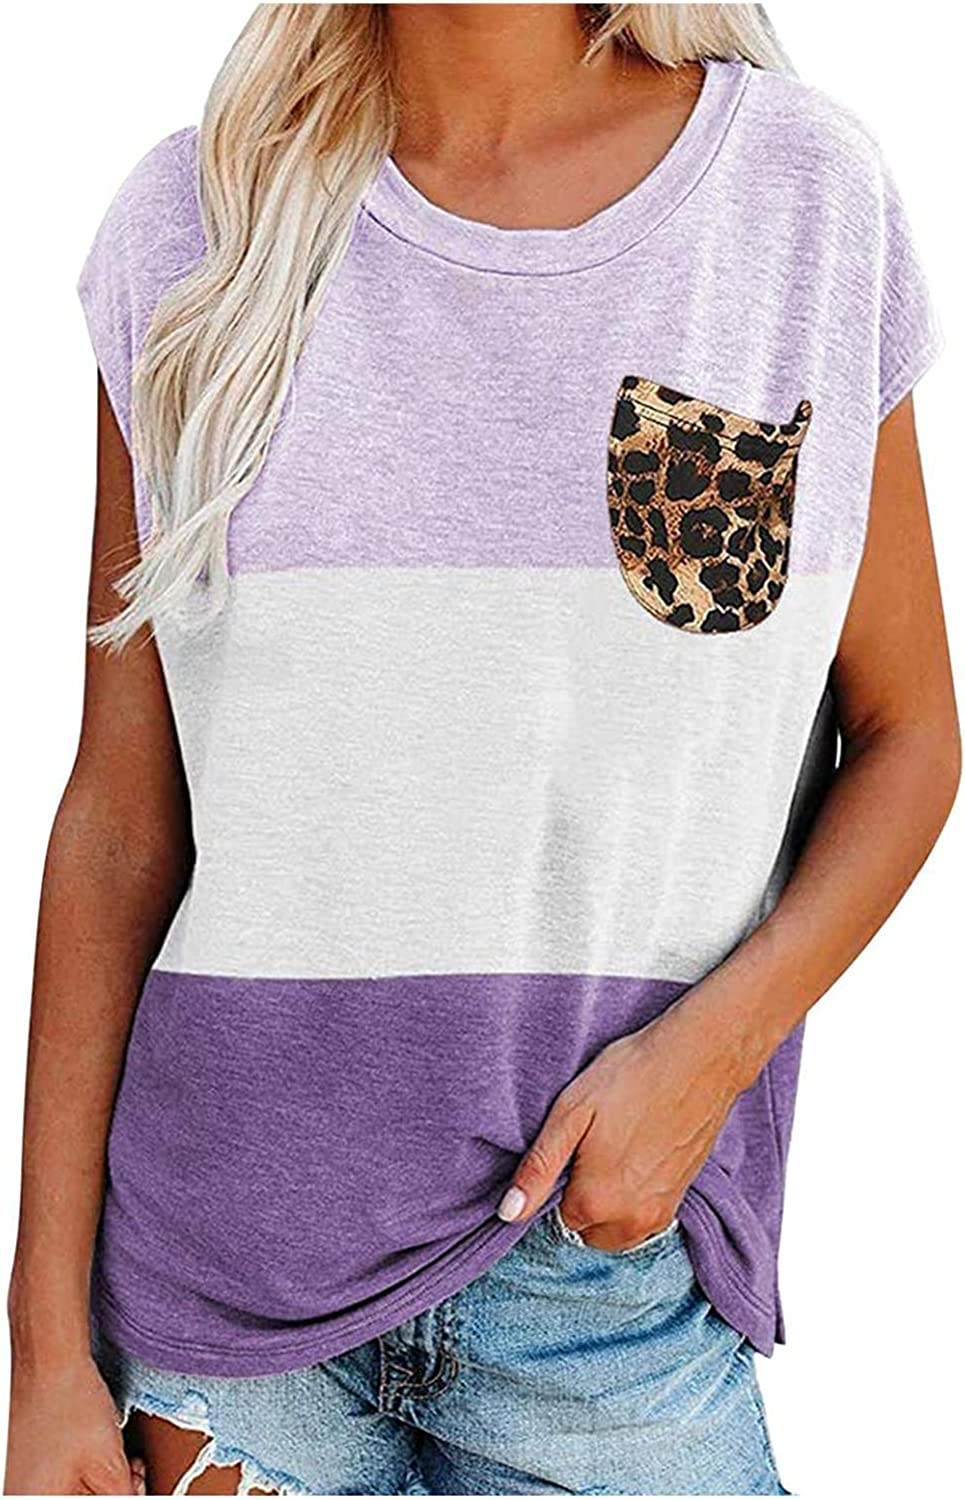 xoxing Summer Tops for Women Casual Plus Size Splicing Collision Leopard Pocket Round Neck Loose Tunics T-Shirt Blouse